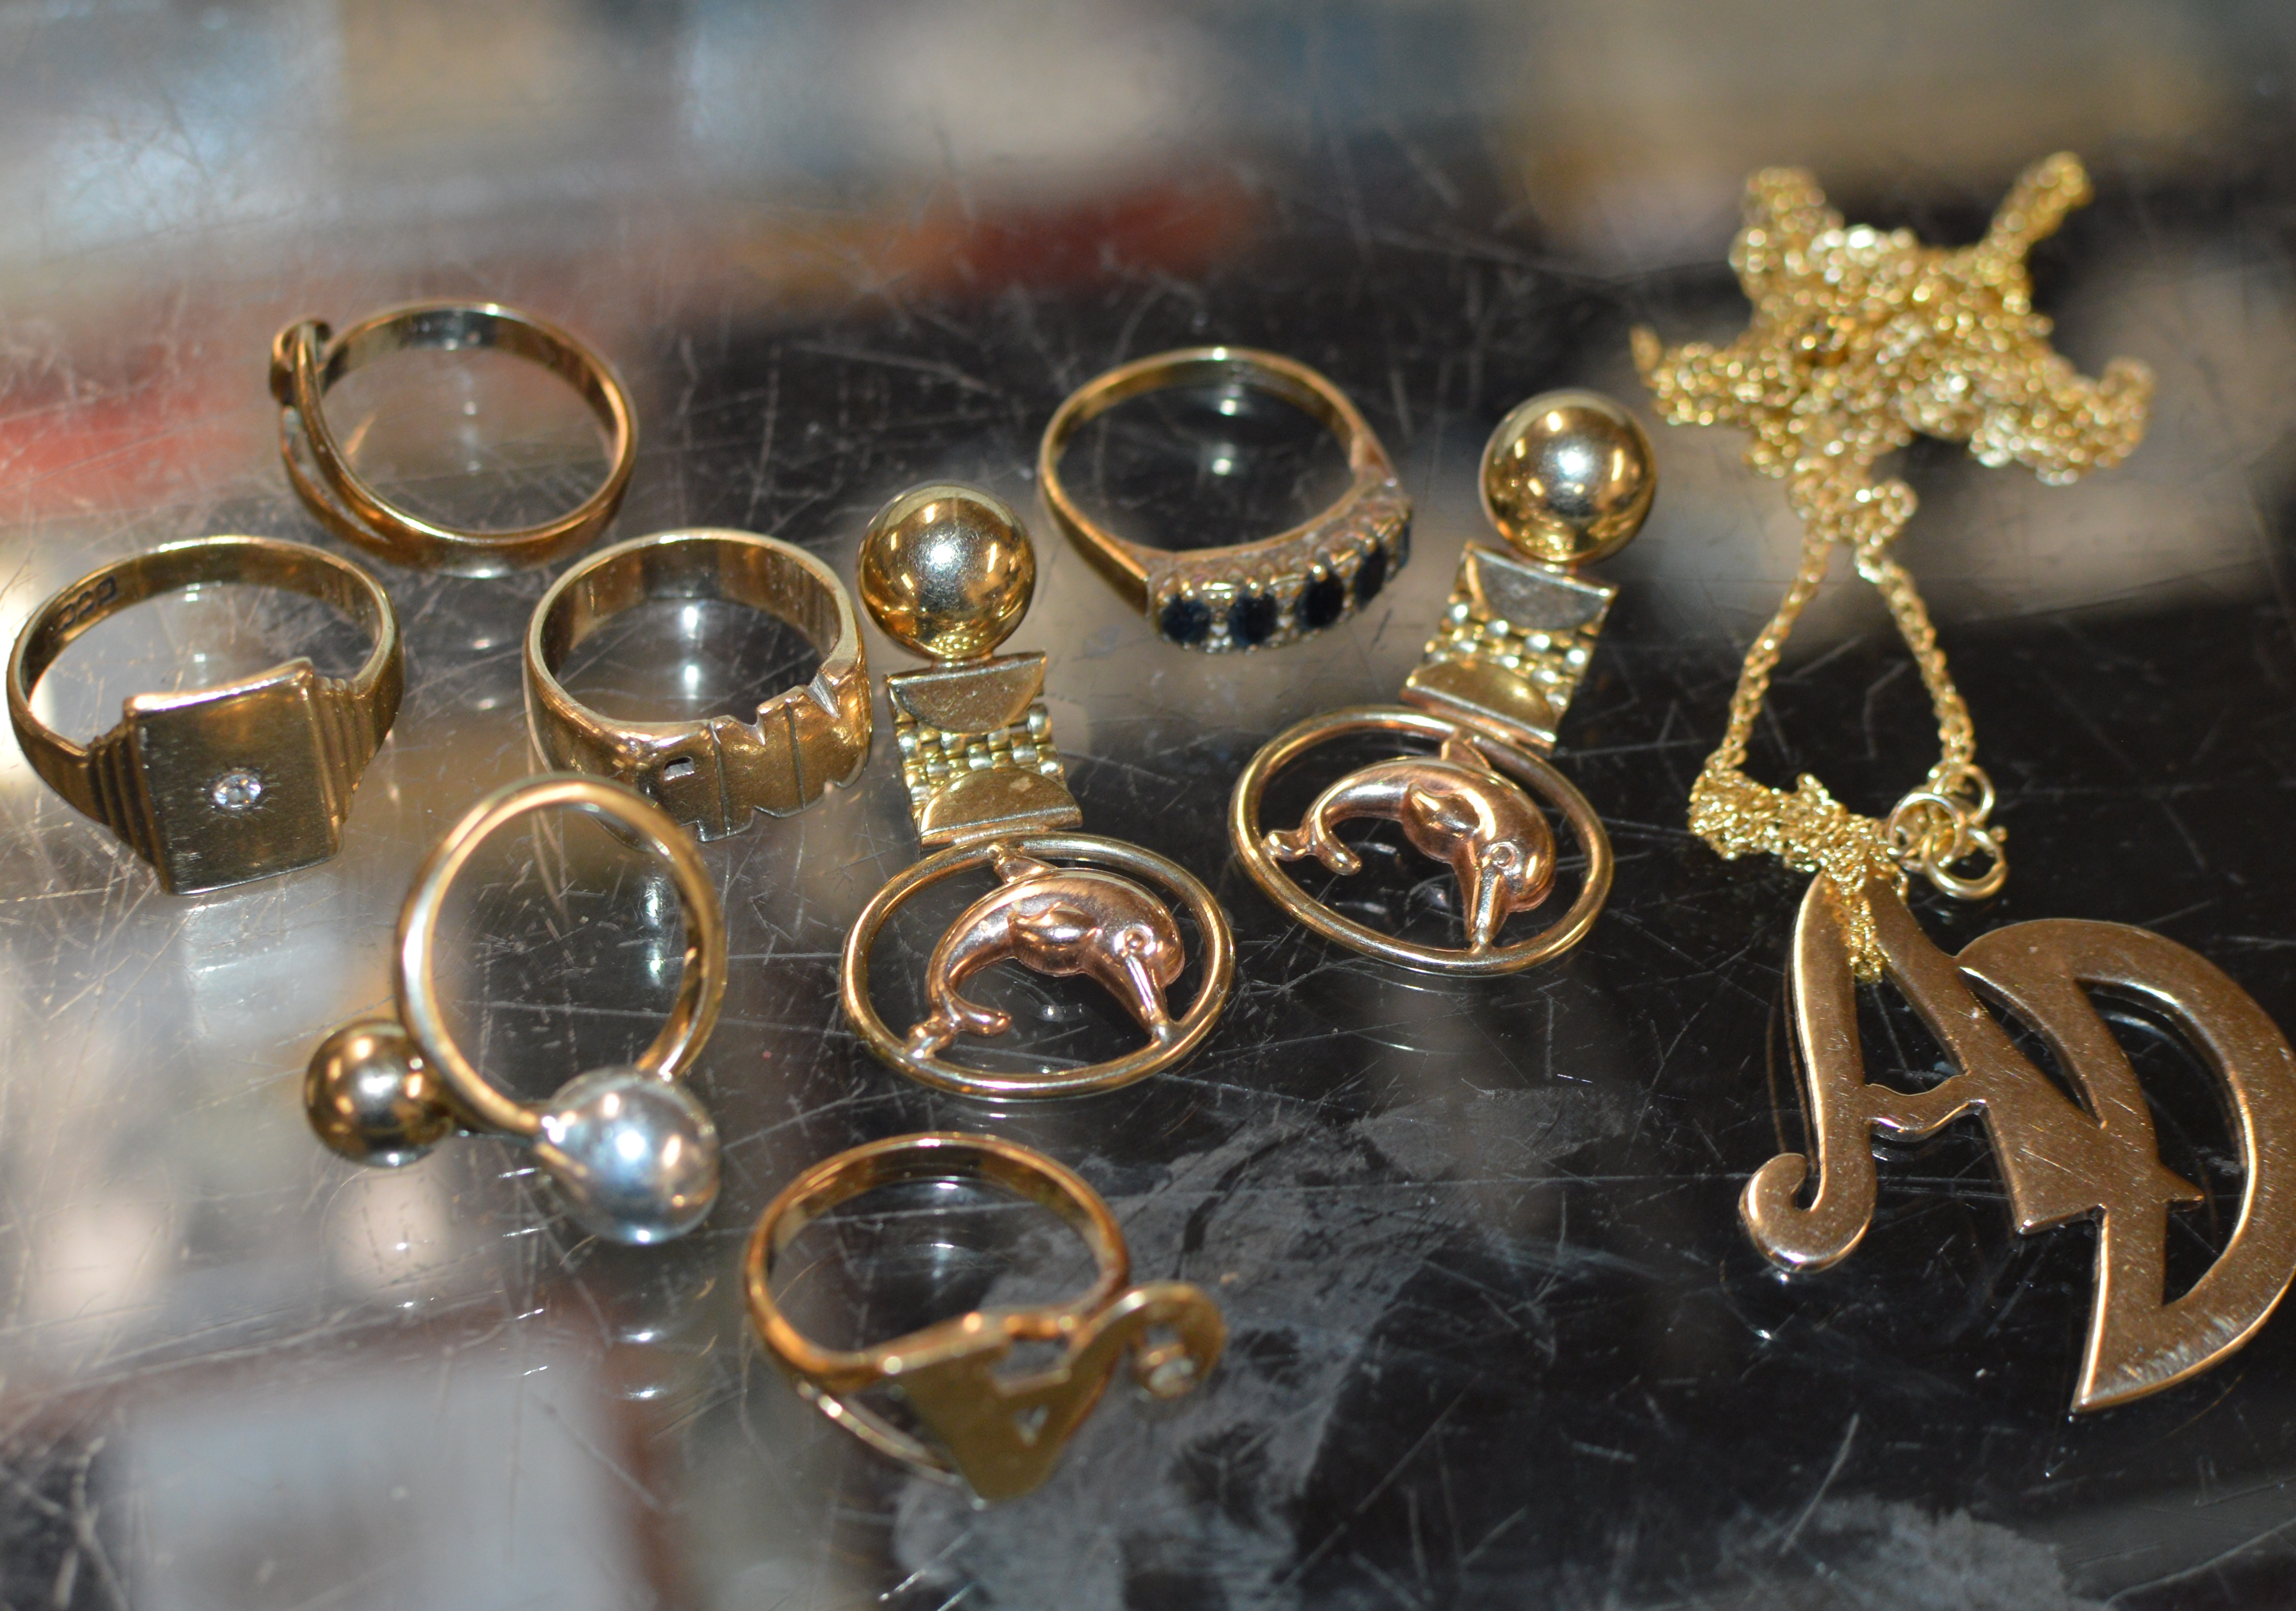 ASSORTED 9 CARAT GOLD JEWELLERY - APPROXIMATE WEIGHT = 45 GRAMS